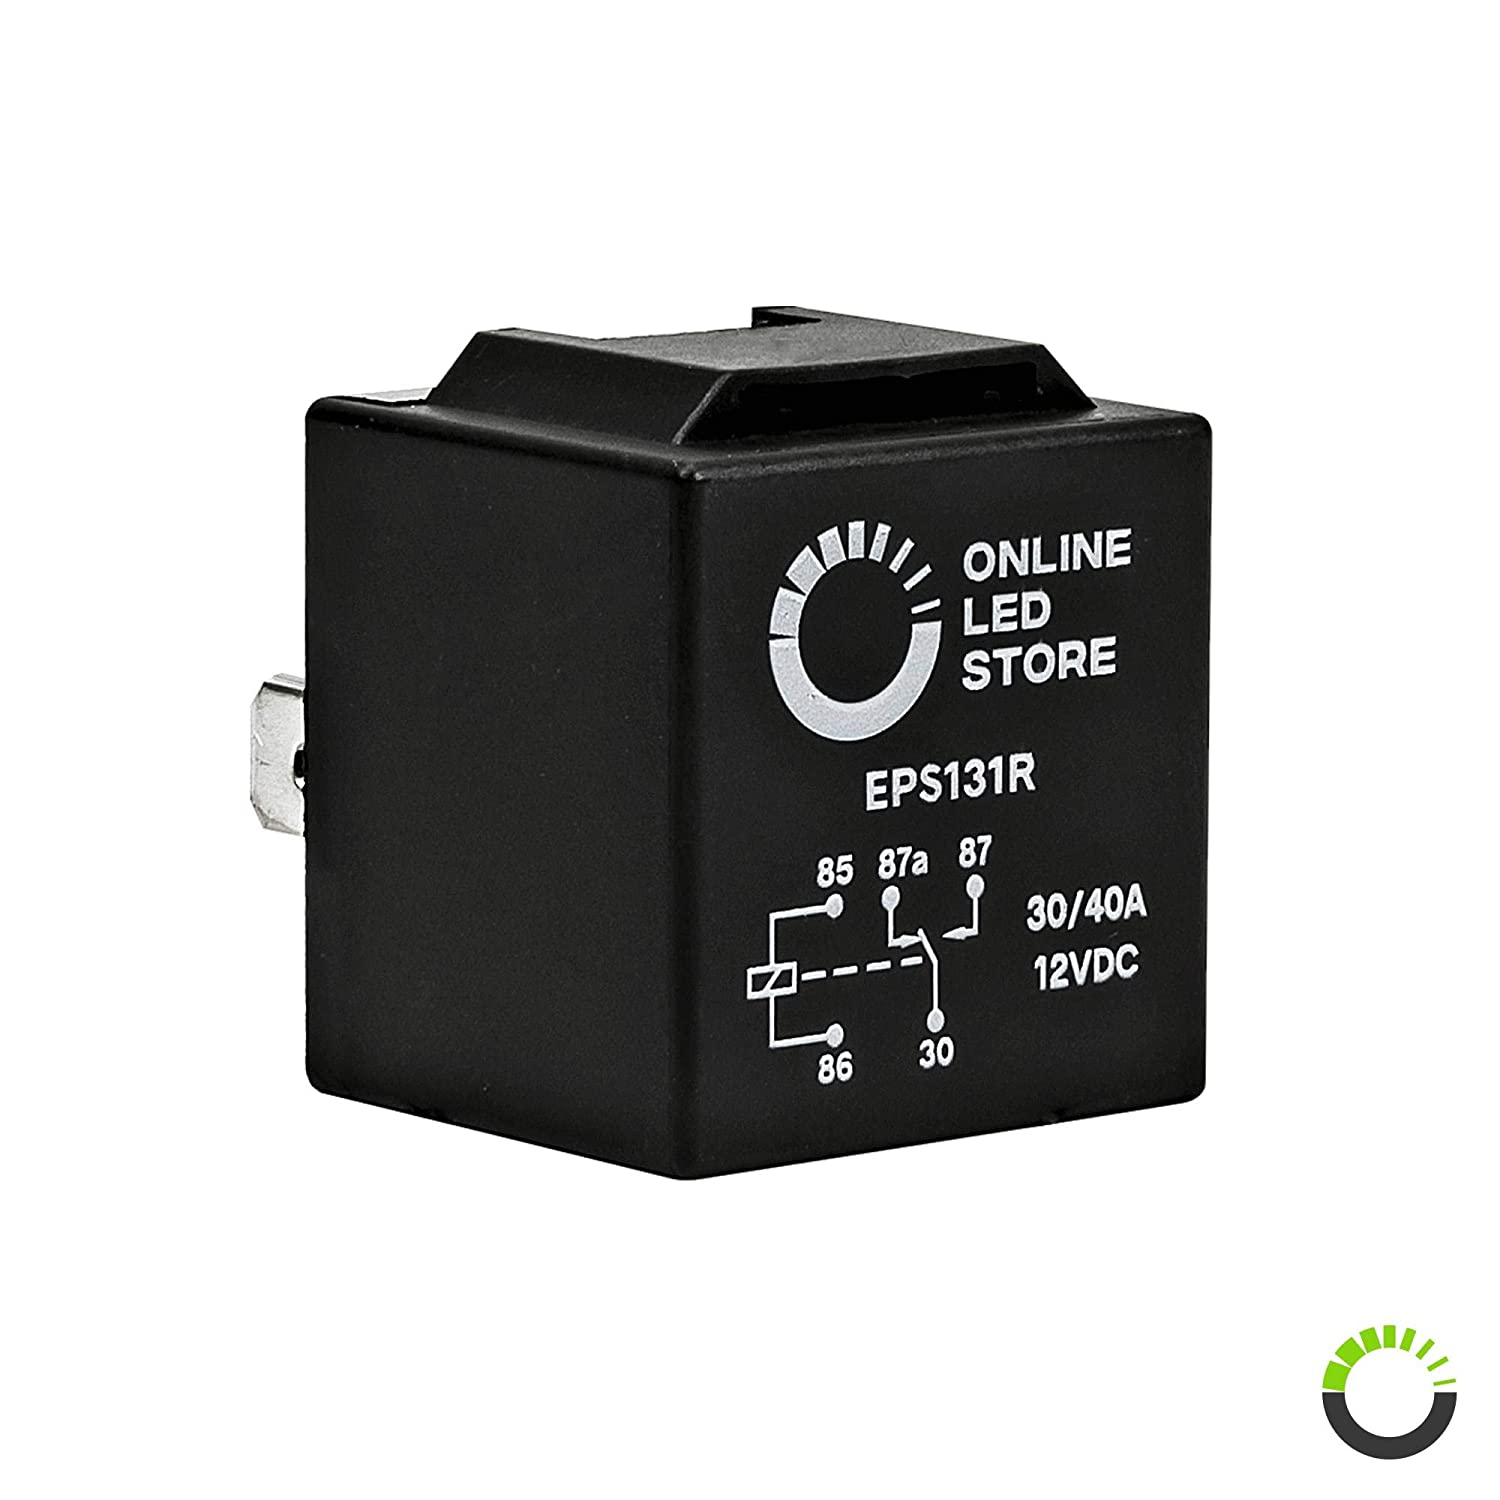 12V 30//40 Amp 5-Pin SPDT Bosch Style Electrical Relays ONLINE LED STORE 10 Pack